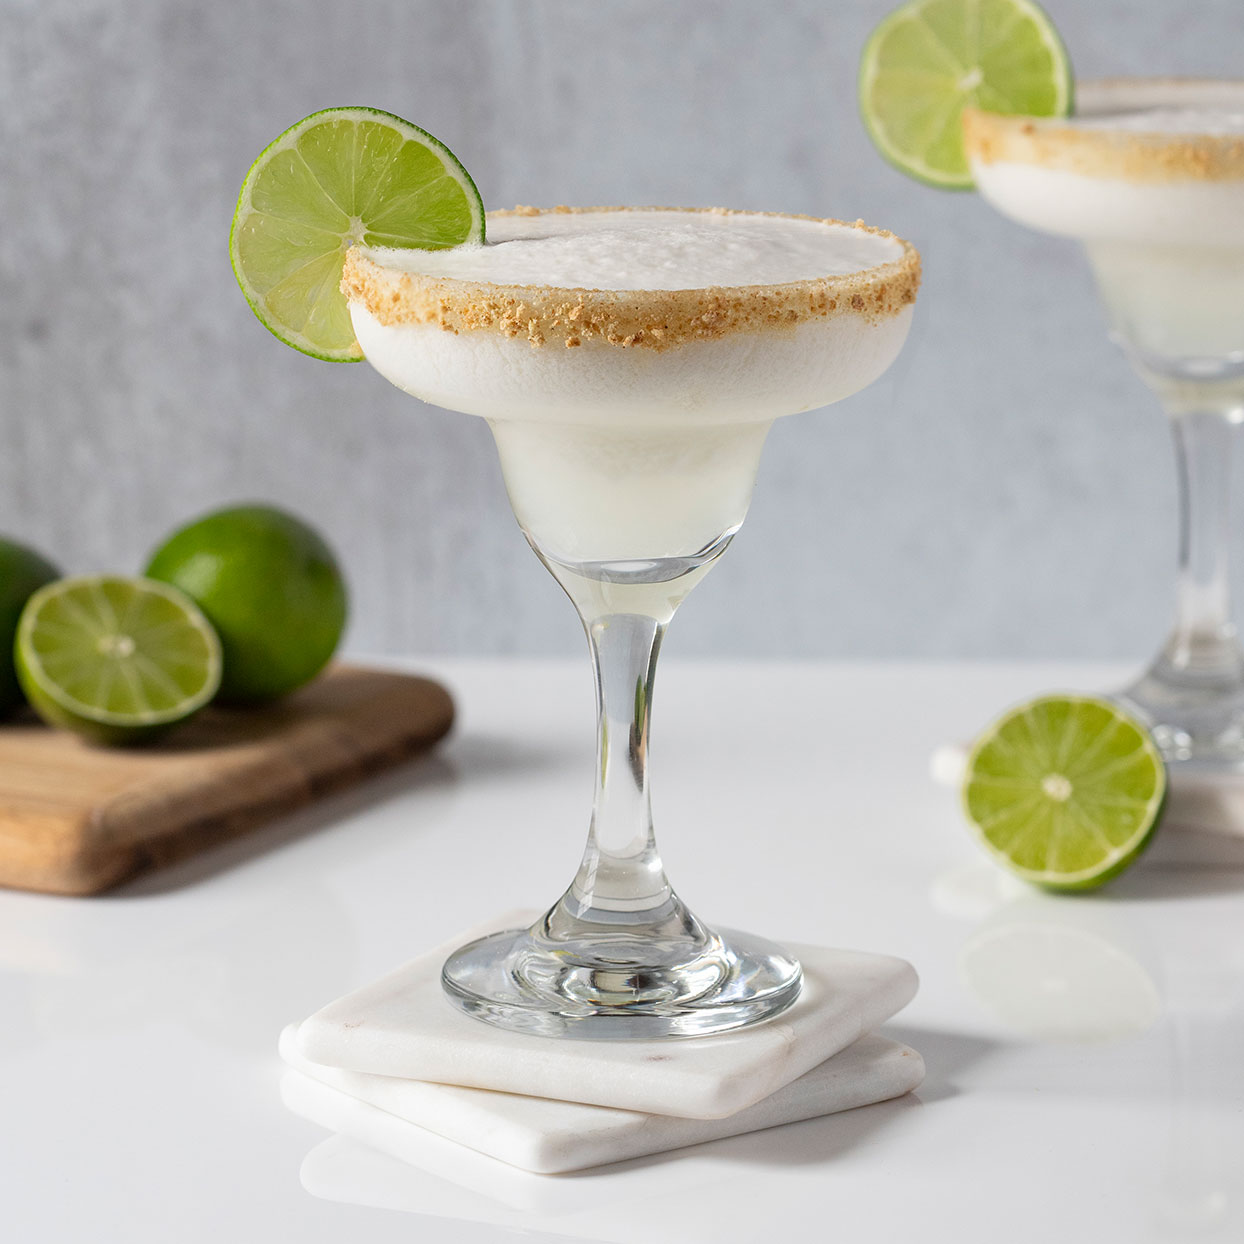 This frozen margarita was inspired by the flavors of a cool and creamy Key lime pie. Whip up a batch of these easy frozen margaritas when you want a sweet and refreshingly tart treat! Use Key limes—which have a wonderful floral aroma and flavor—if you can find them, but common limes work as well. Freshly squeezed juice will have the best flavor, but you can also find bottled Key lime juice—just be sure to buy unsweetened juice if you go for packaged juice. If you prefer a mocktail, simply replace the tequila with water.